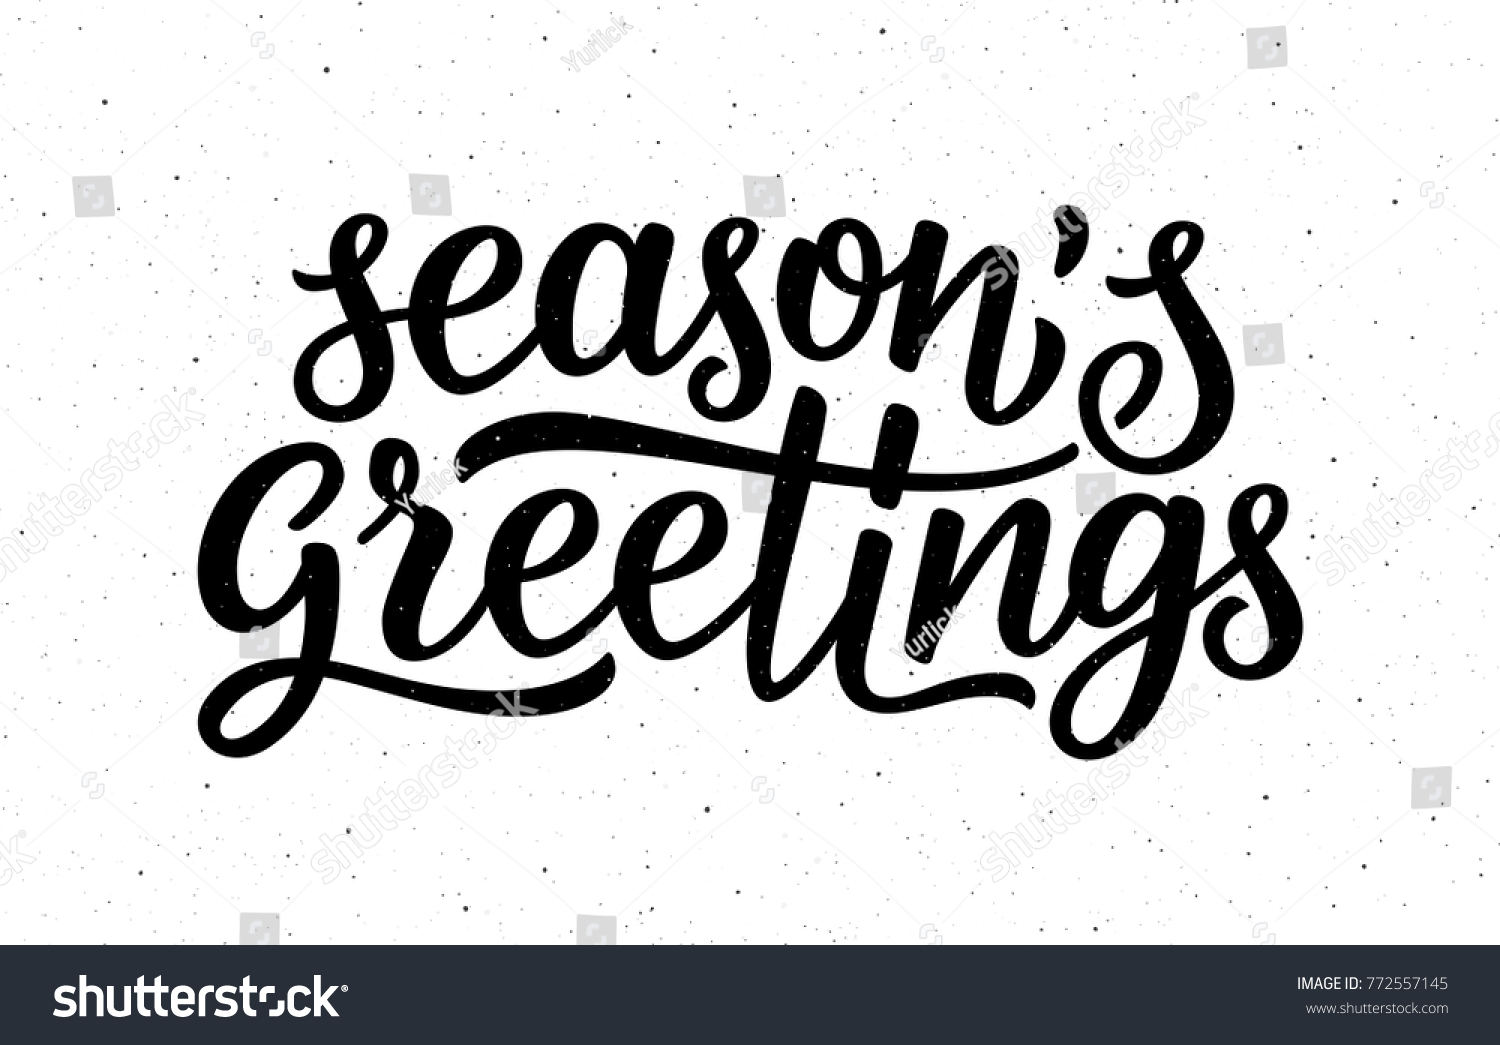 Seasons greetings calligraphy lettering text on stock illustration seasons greetings calligraphy lettering text on white background with vintage paper texture retro greeting card kristyandbryce Images